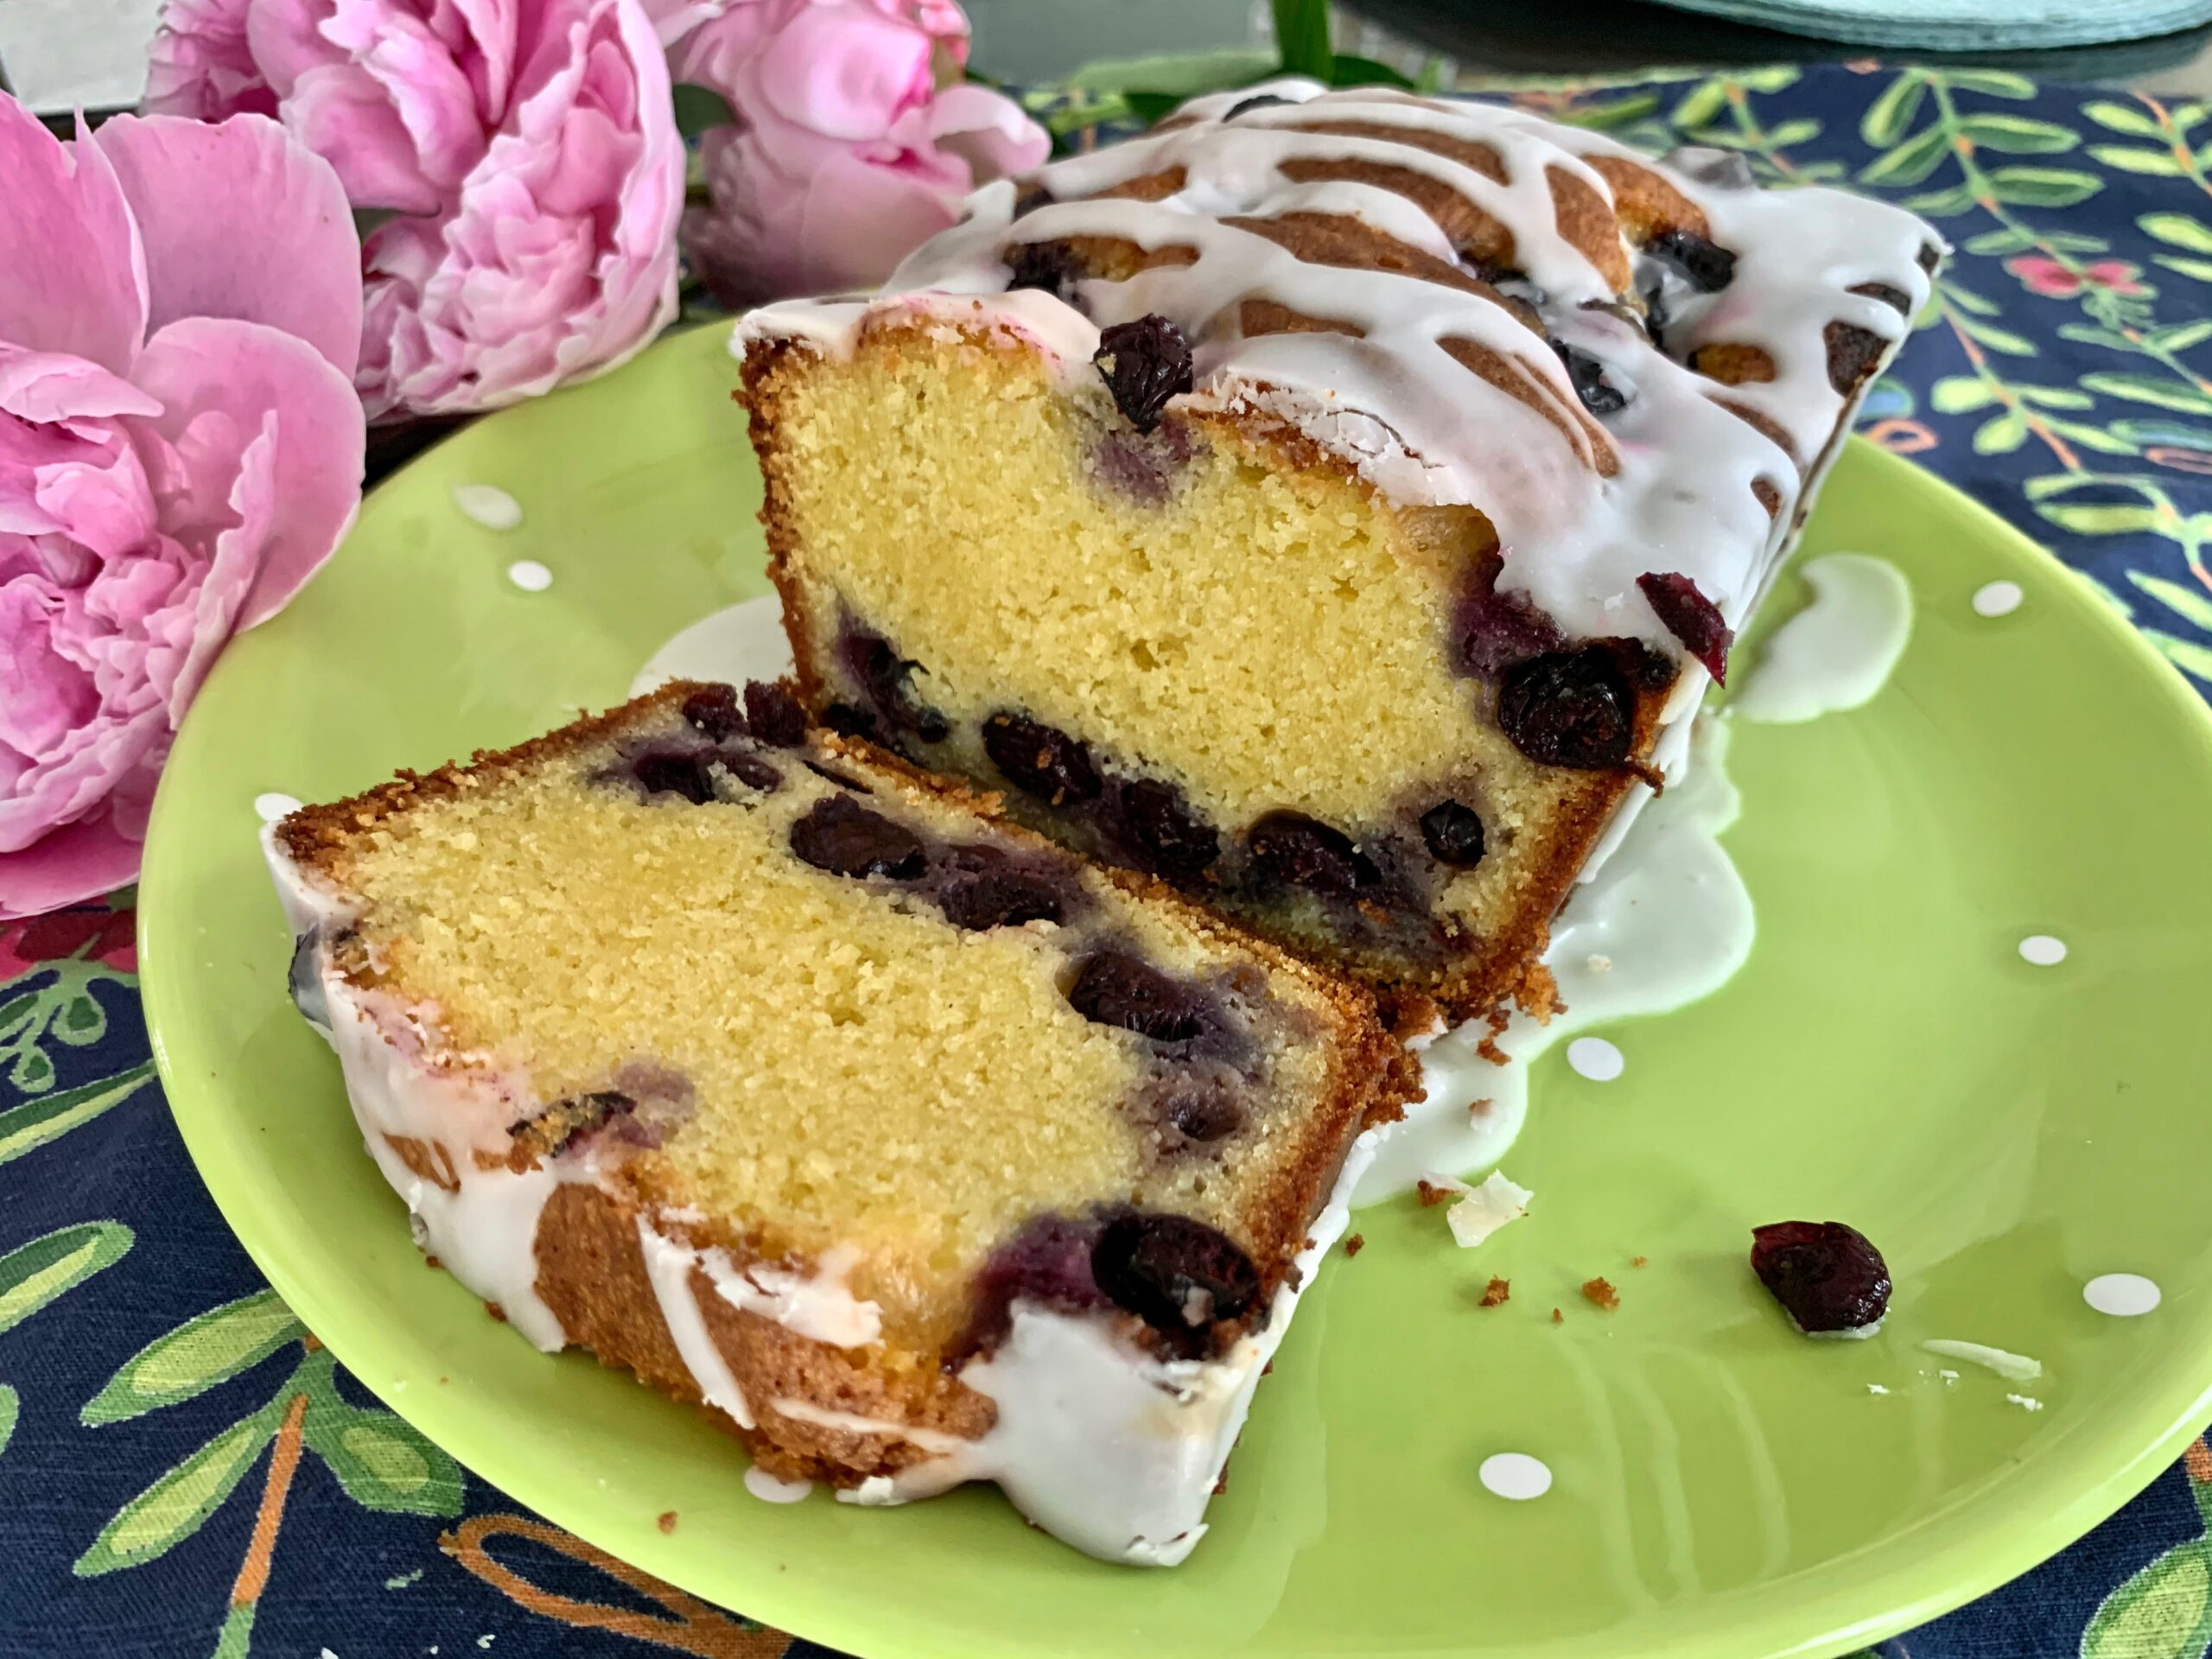 Ottolenghi's Blueberry, Almond And Lemon Cake